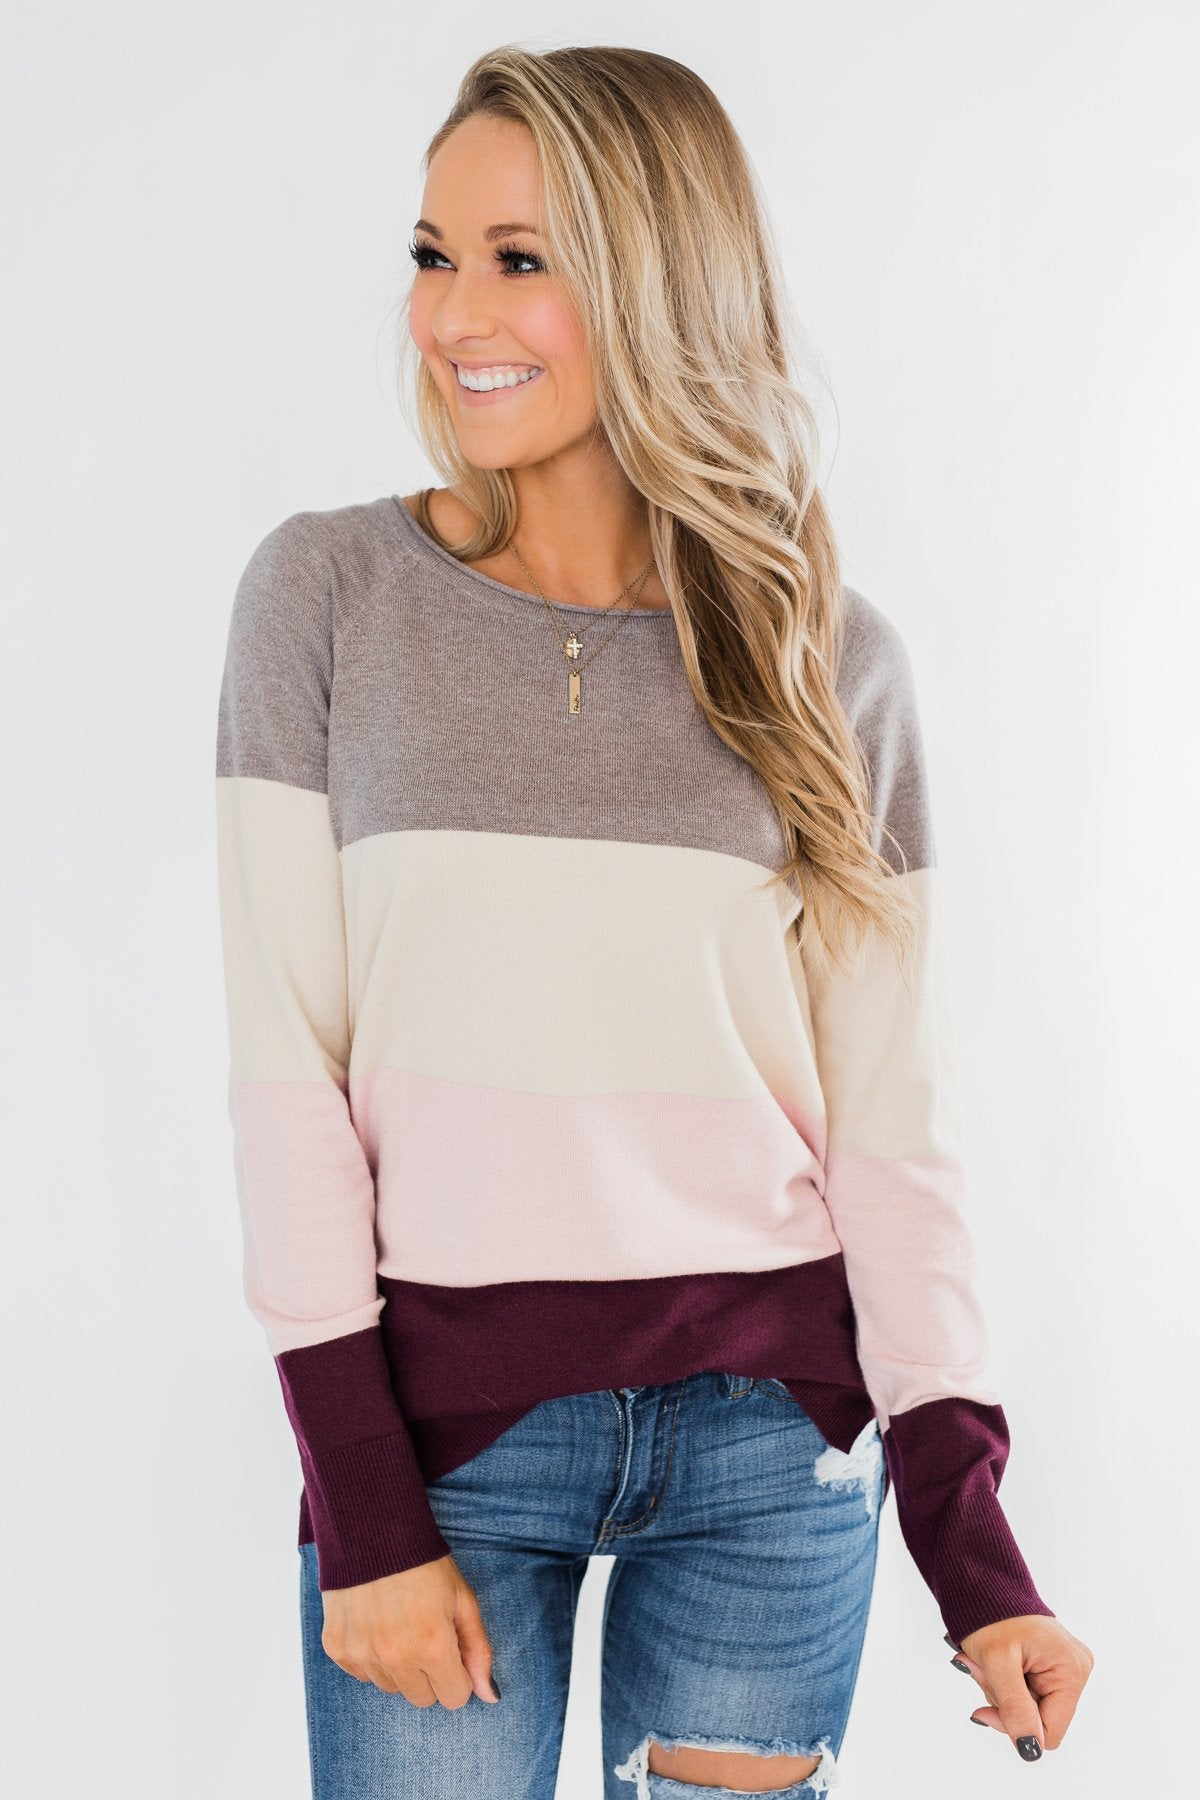 Be Yourself Color Block Sweater- Grey, Cream, & Blush